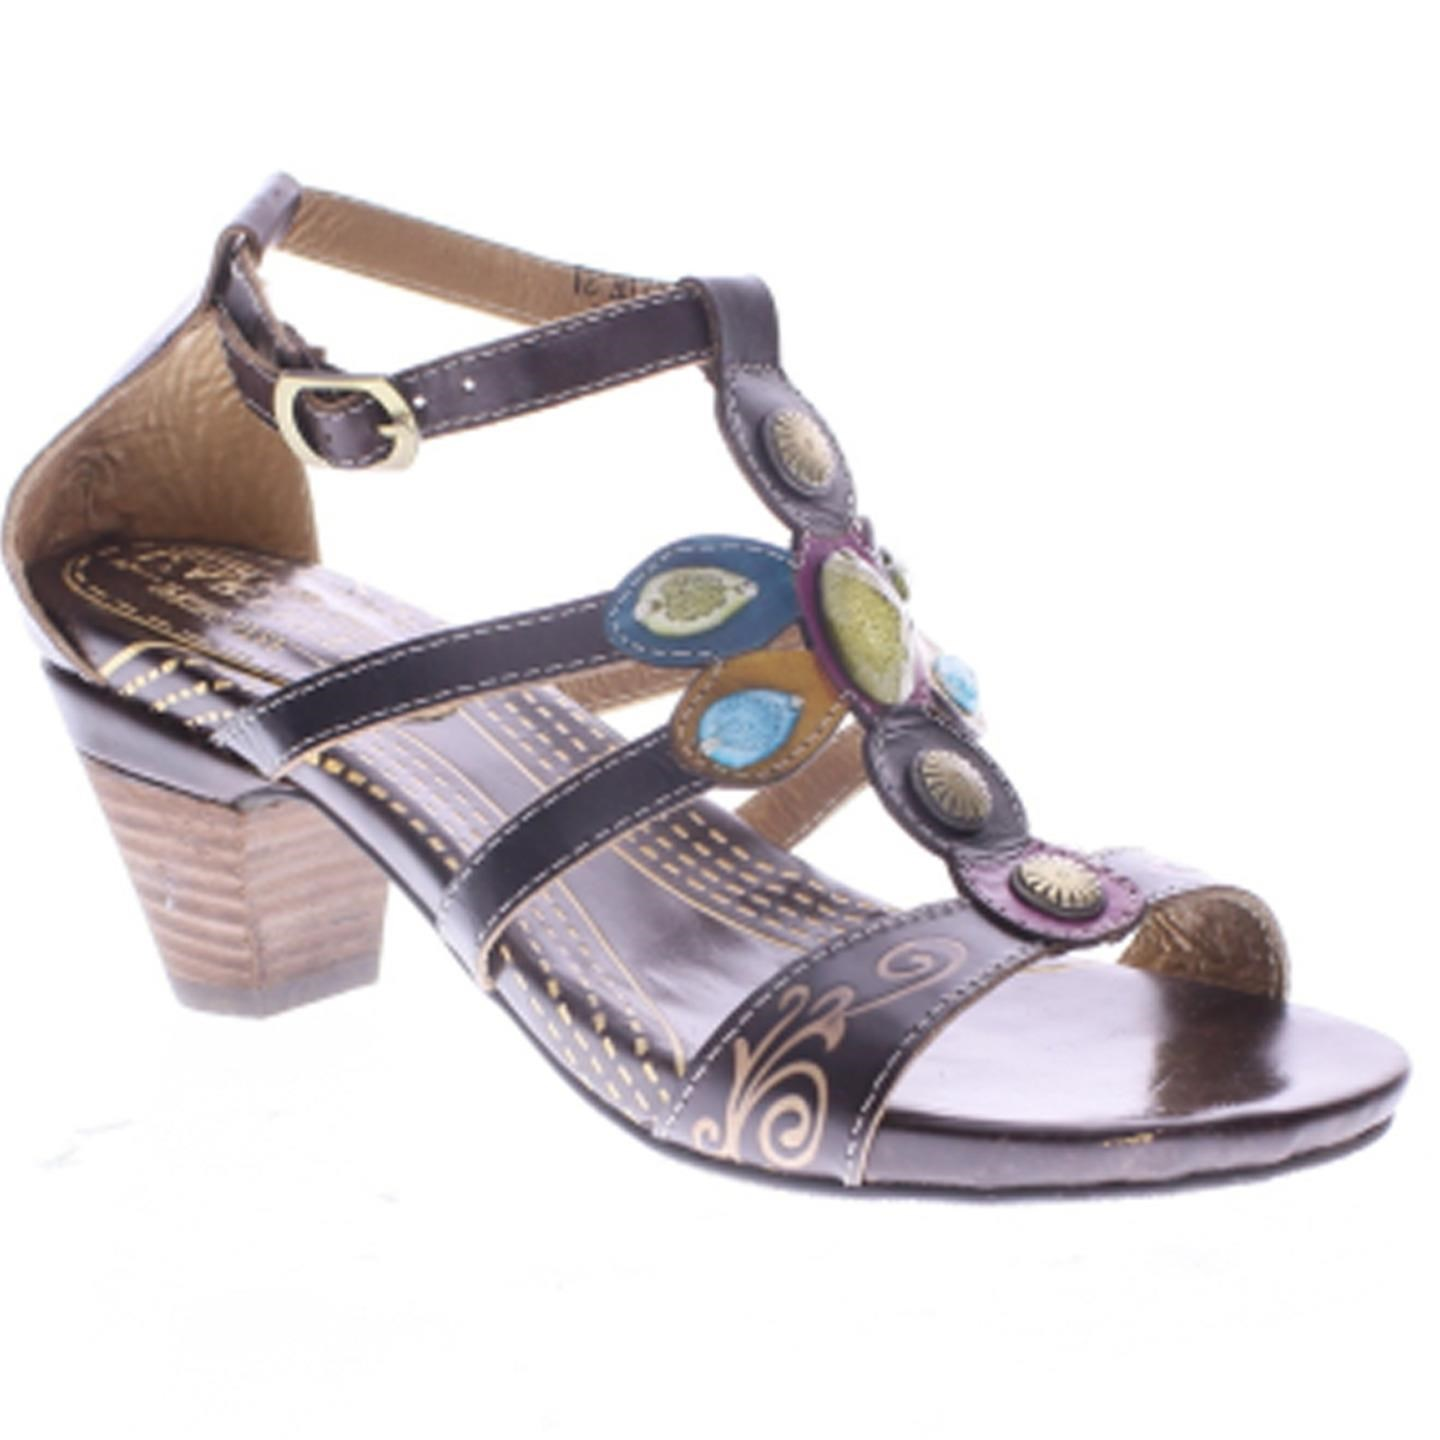 L'Artiste Frenzie By Spring Step Brown Leather Sandal 39 EU   8.5 US Women by Spring Step